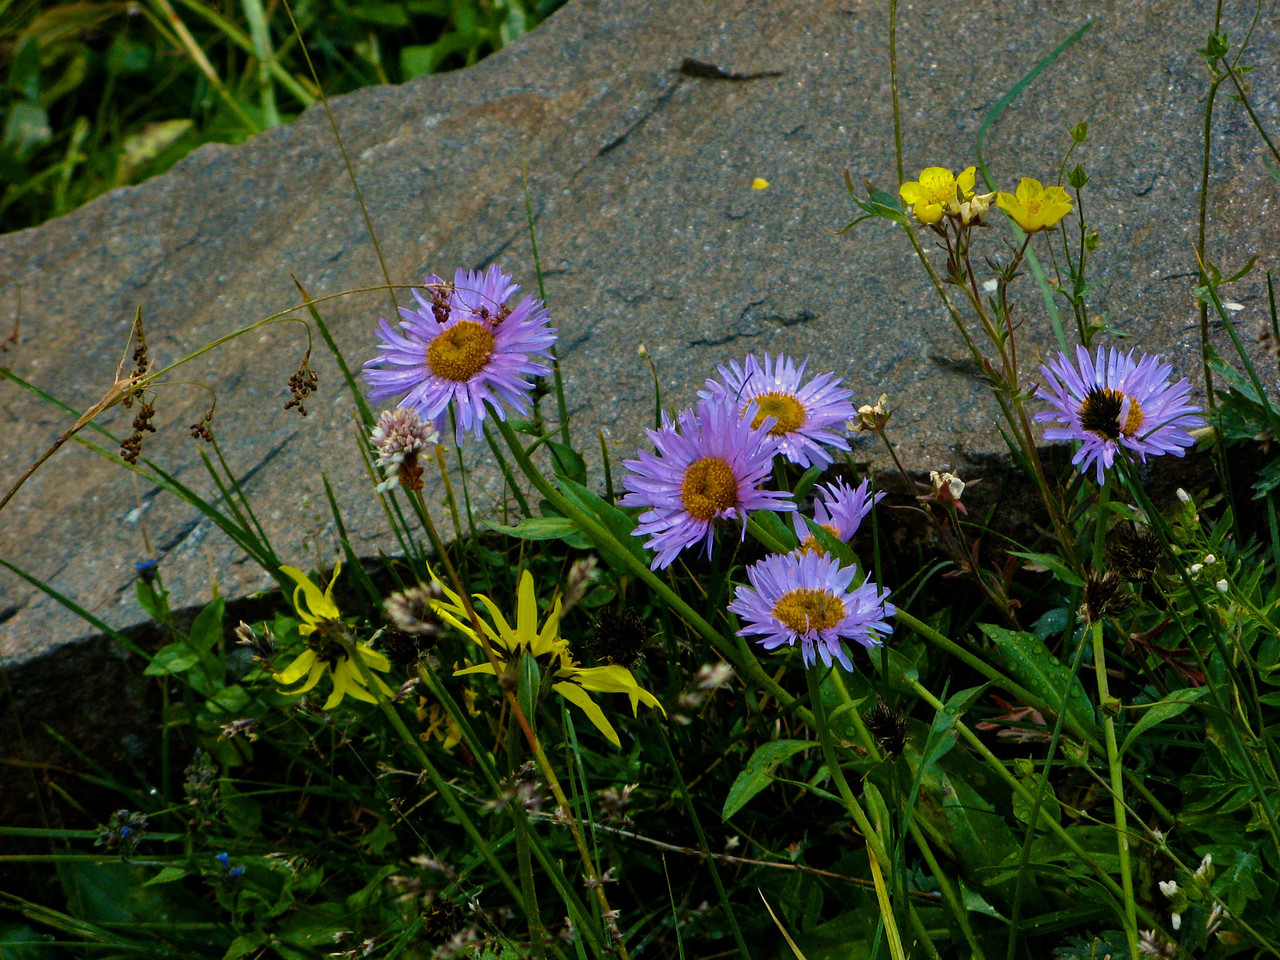 If you hike the trail at the right time of year, there's always wild flowers along the way.